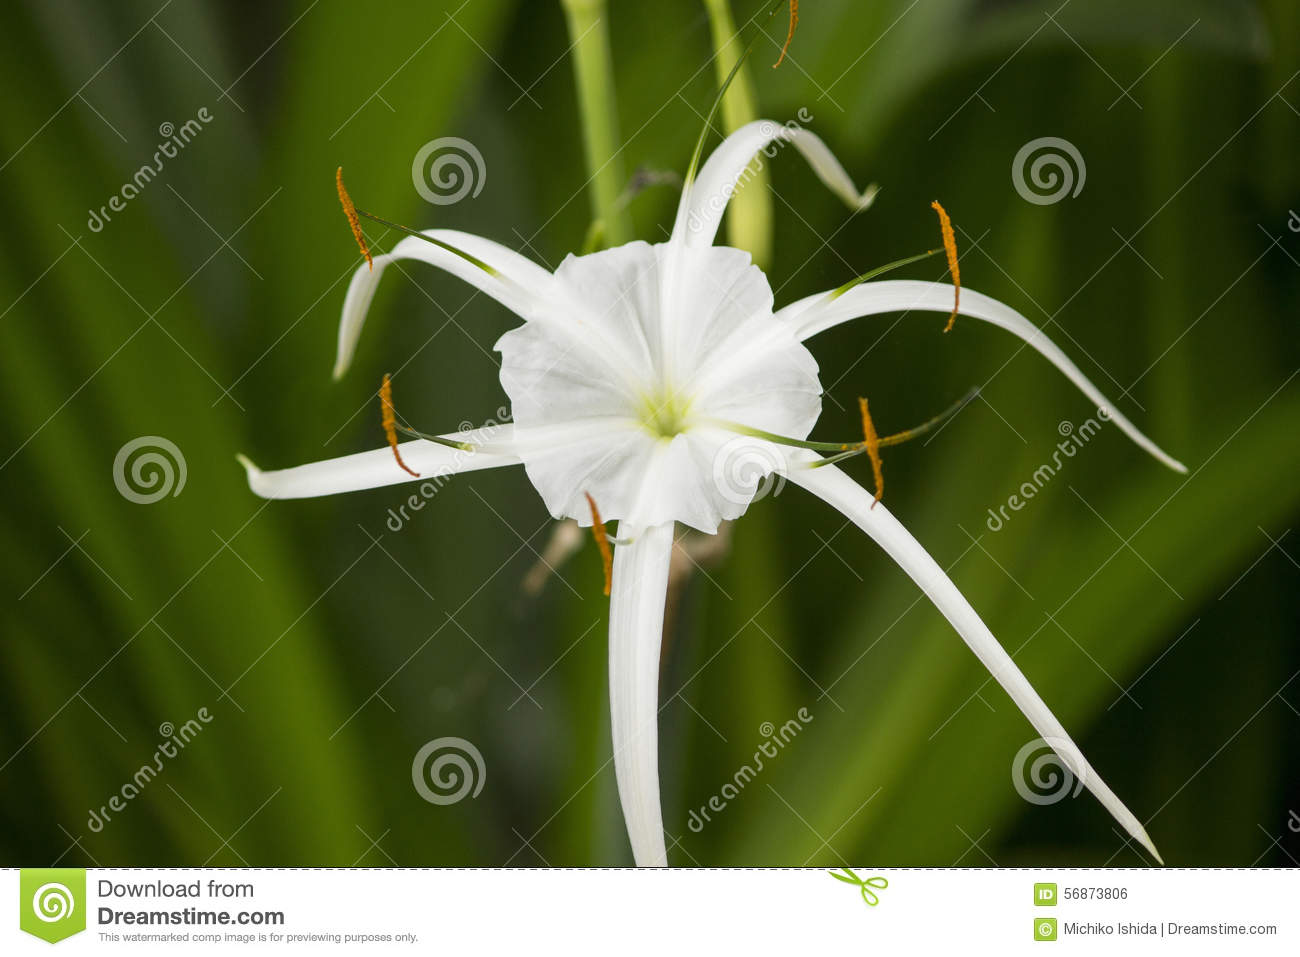 White lily like flower spider lily stock photo image of leaf white lily like flower has long skinny petals spider lily izmirmasajfo